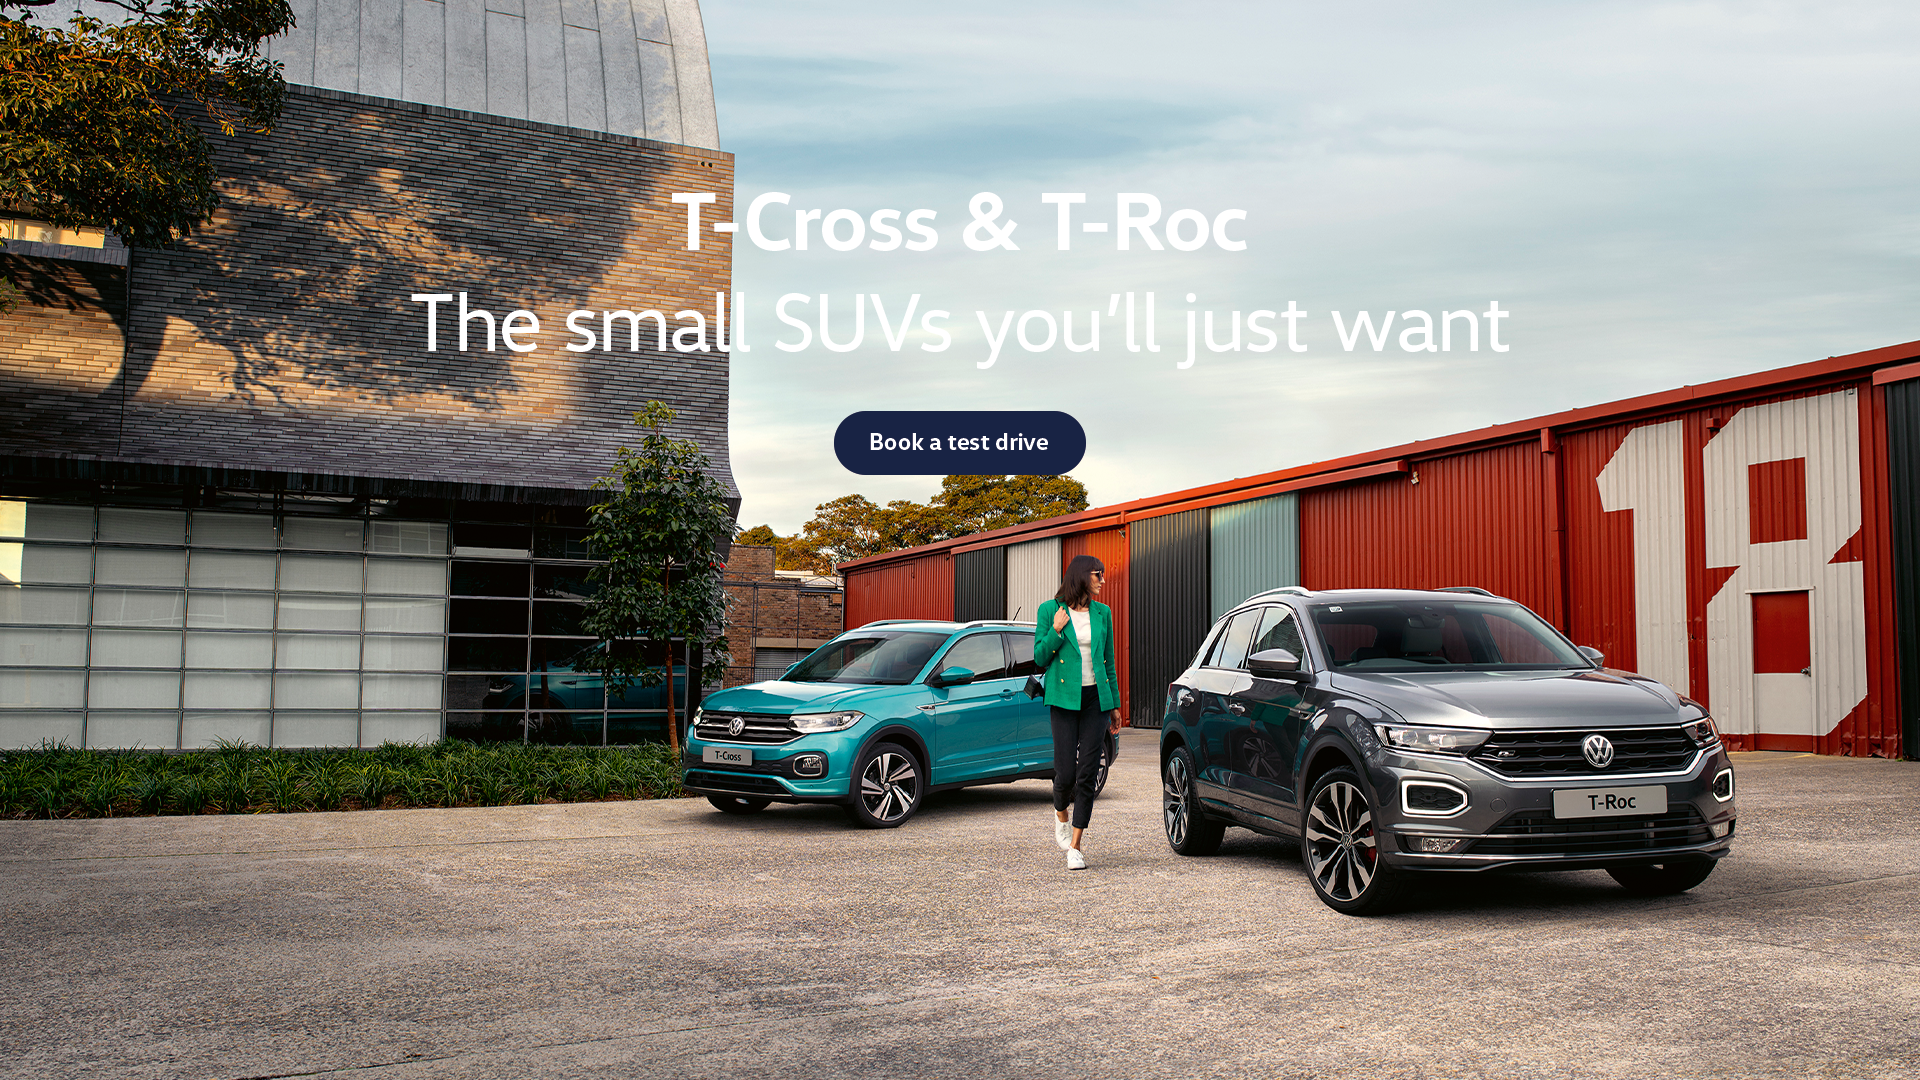 Volkswagen Small SUV range. Test drive today at Taree Volkswagen